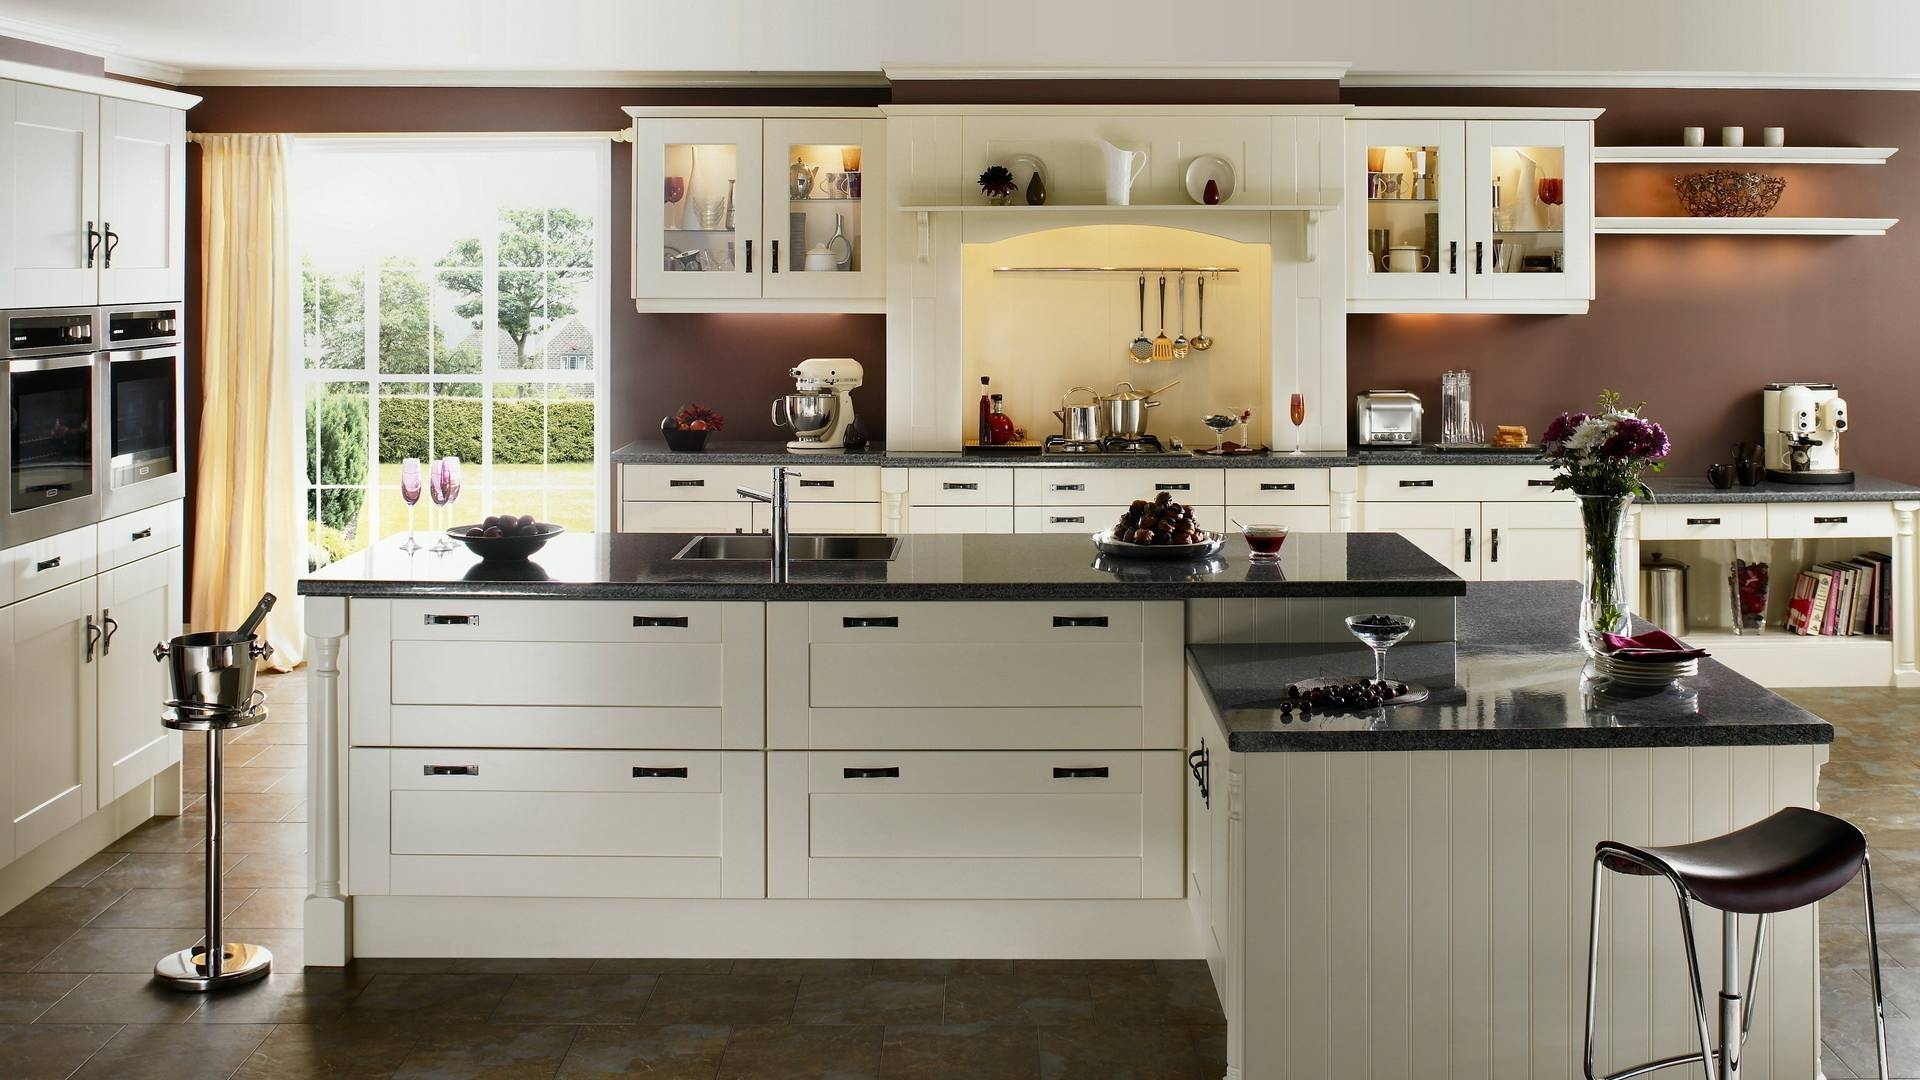 Cabinet Refacing with shaker style doors